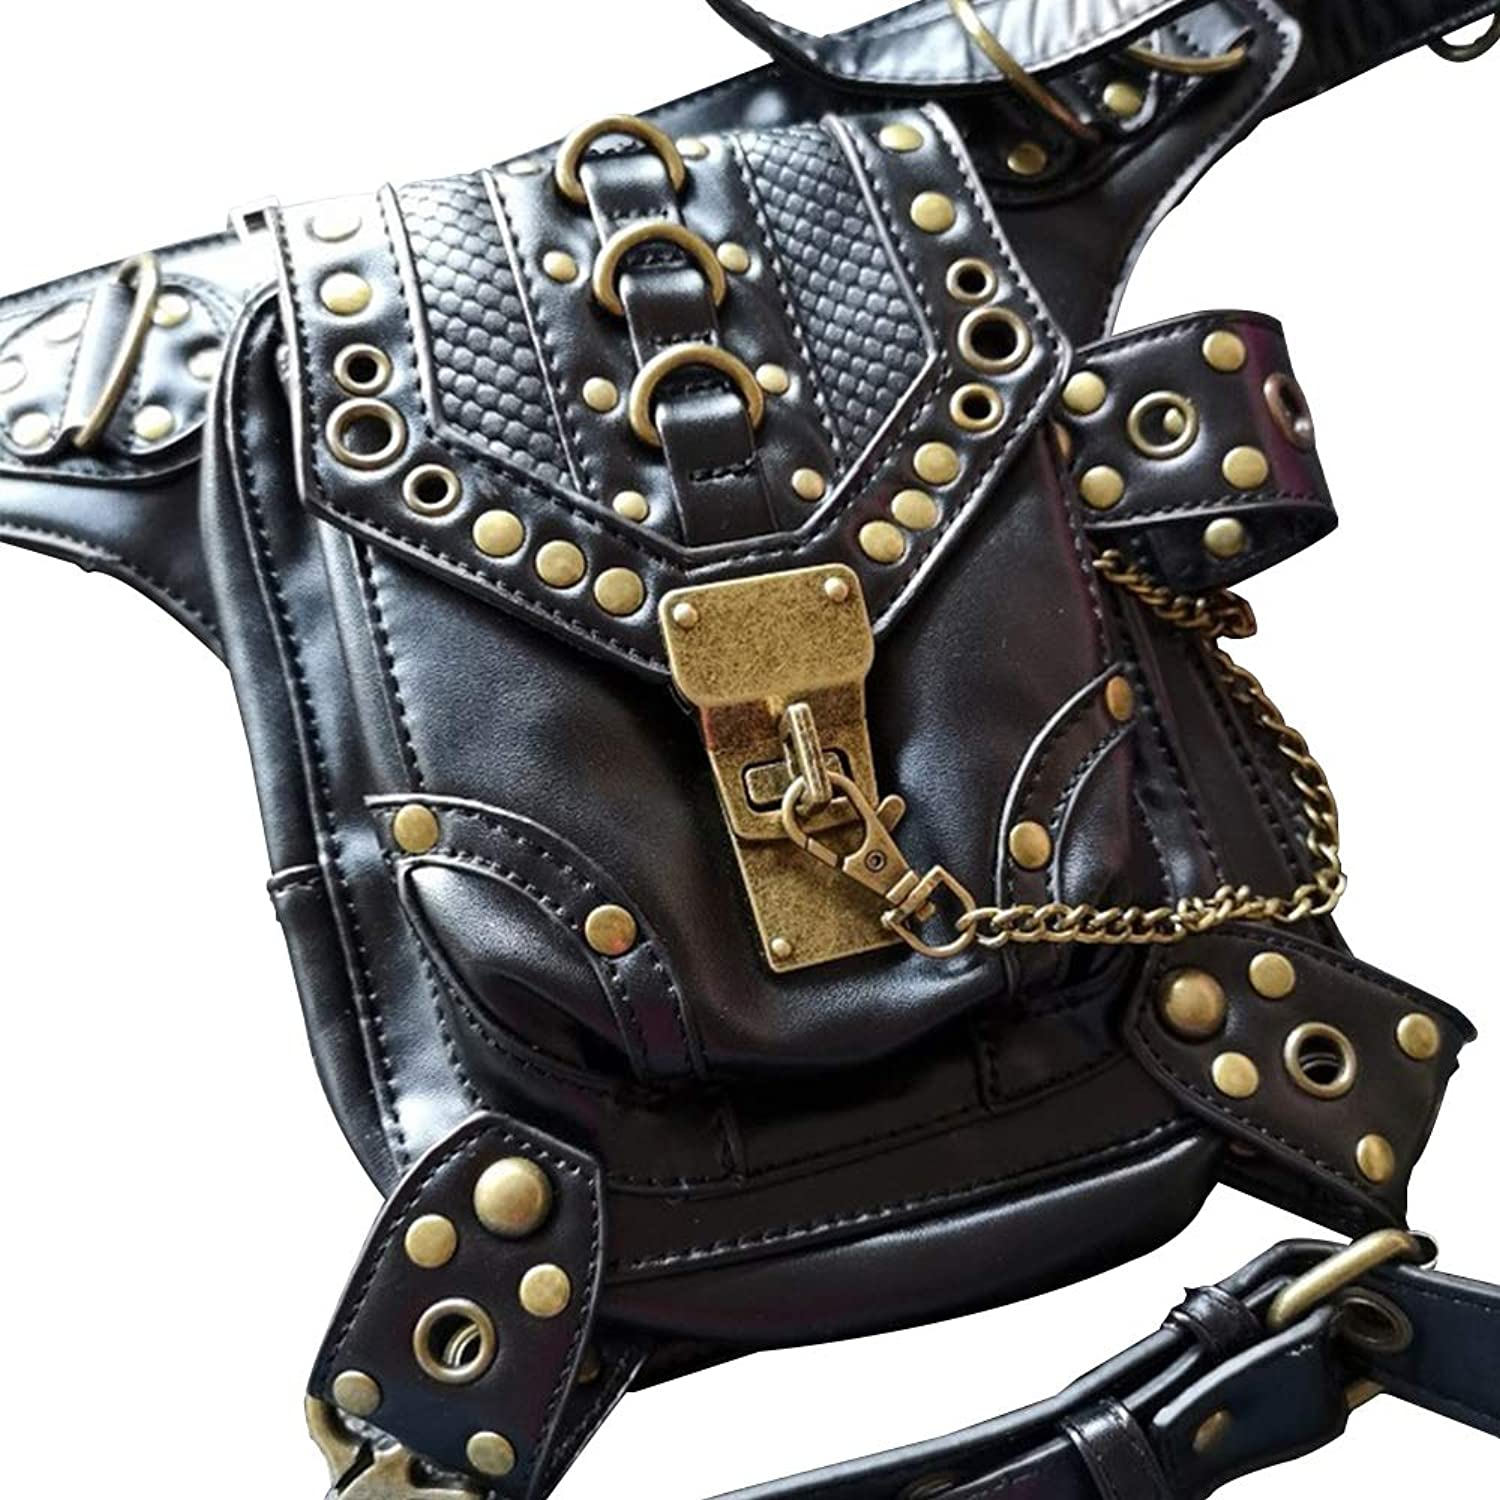 SmartHS Women PU Leather Motorcycle Bag Steampunk Shoulder Waist Bag Thigh Holster Bag